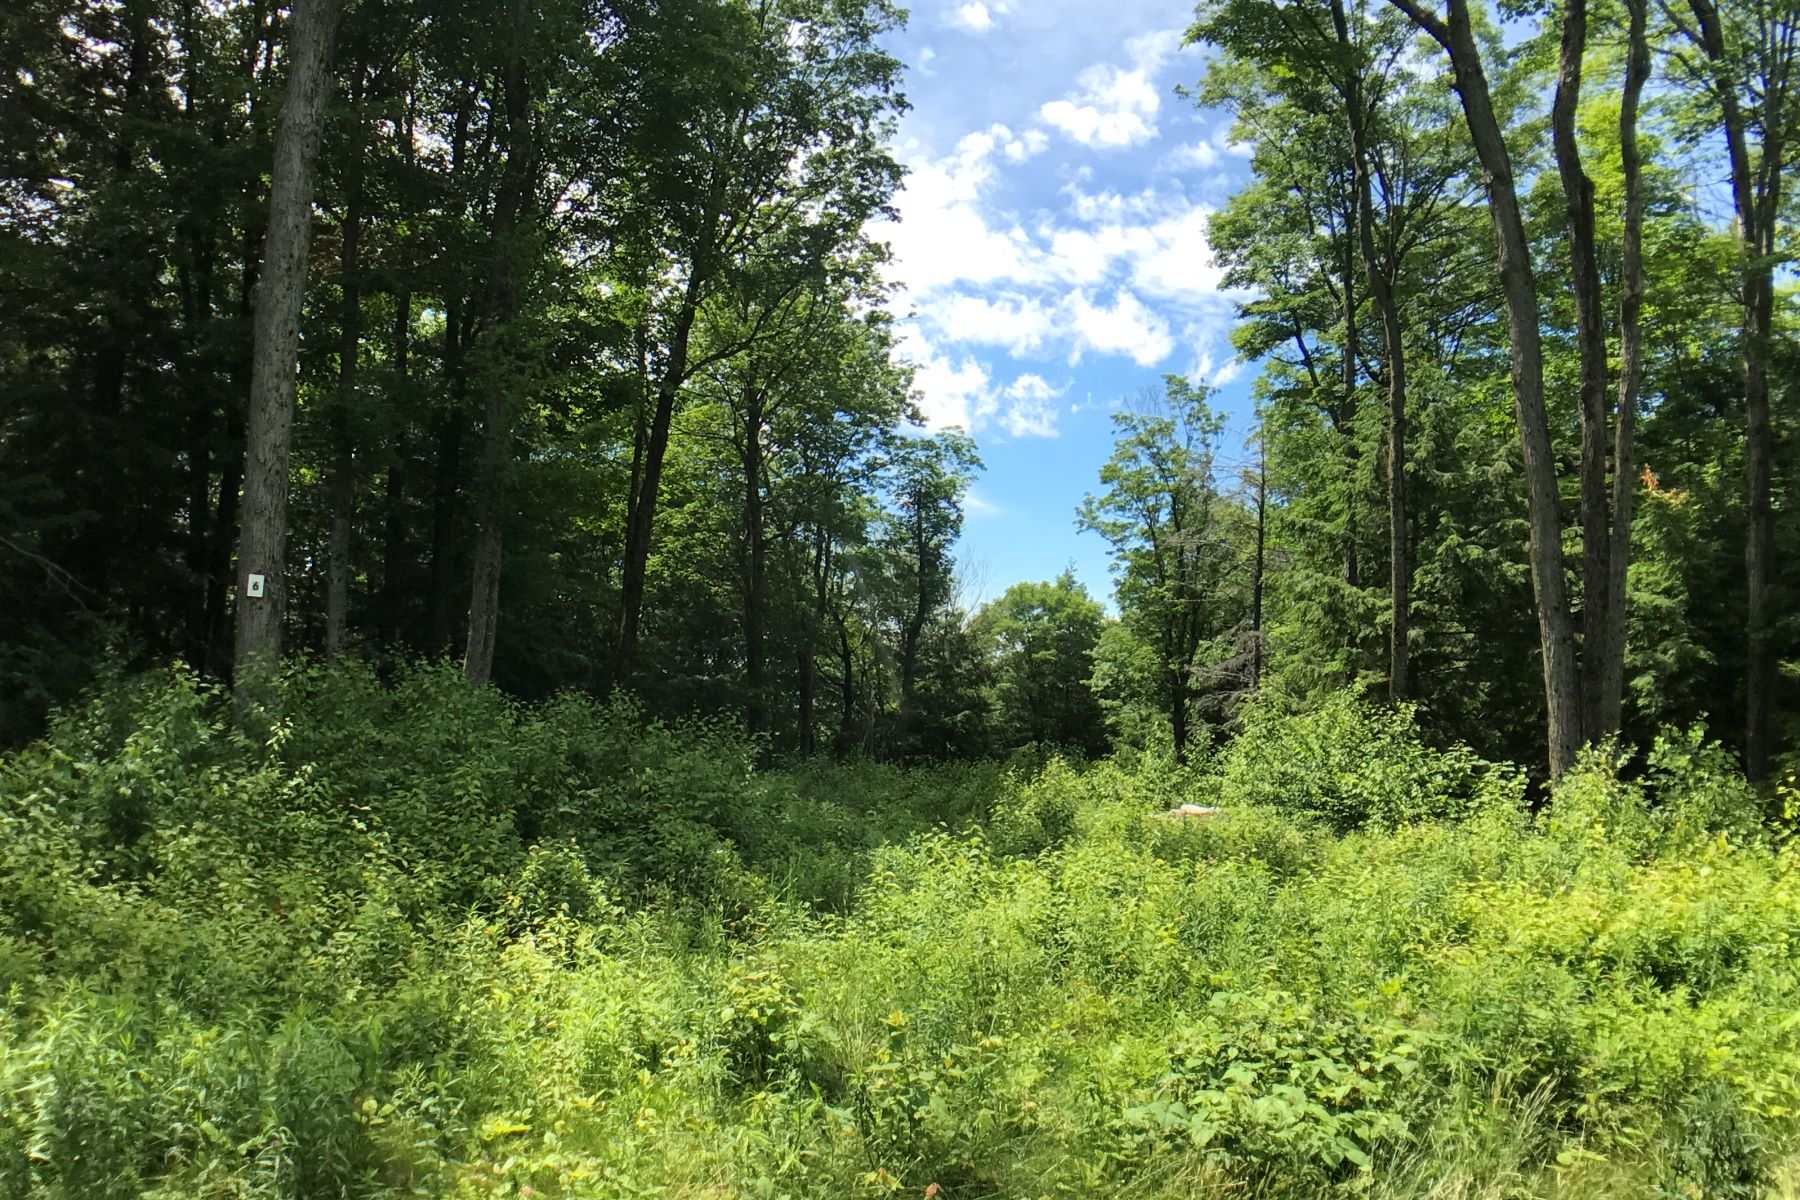 Land for Sale at Affordable Ready-to-Build Parcel with Shared Waterfront Access Lot #6, Moose Dr Lee, Massachusetts 01238 United States